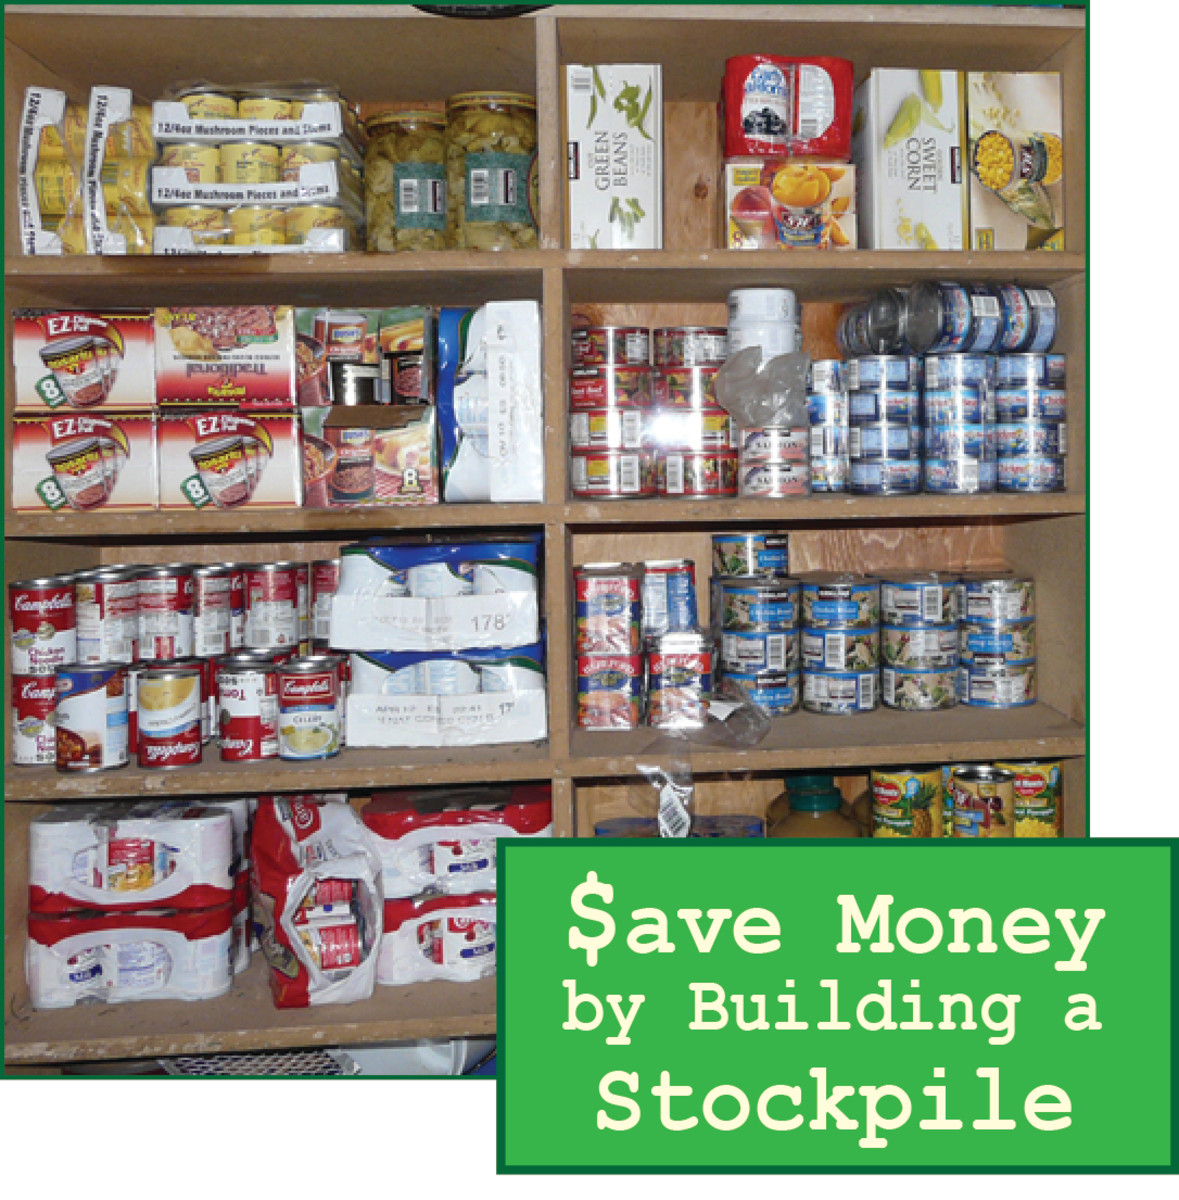 Stockpiling to Prepare for Disaster and Save Money